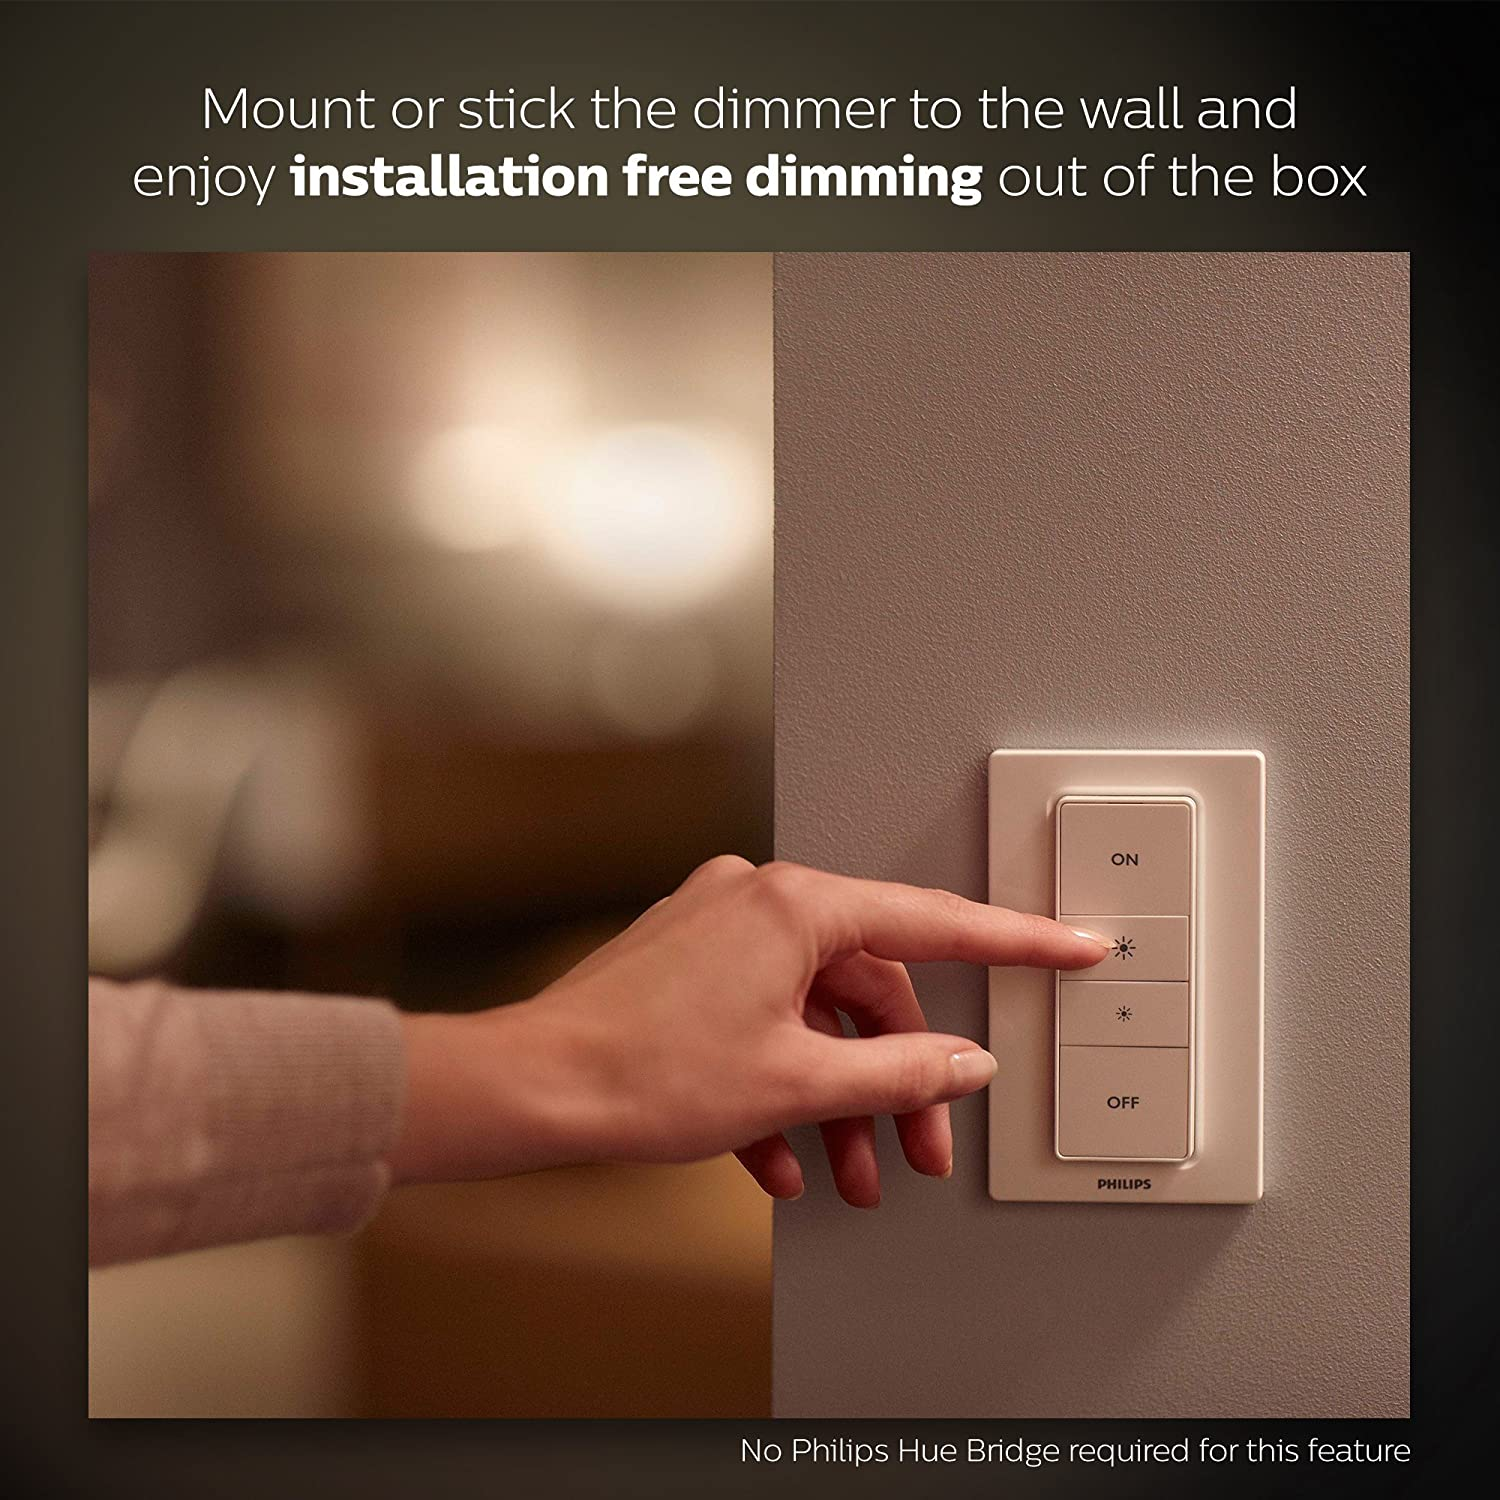 Philips Hue Smart Wireless Dimming Kit Installation Free Exclusive Wiring A Light Switch In The Middle Of Run For Lights Compatible With Amazon Alexa Apple Homekit And Google